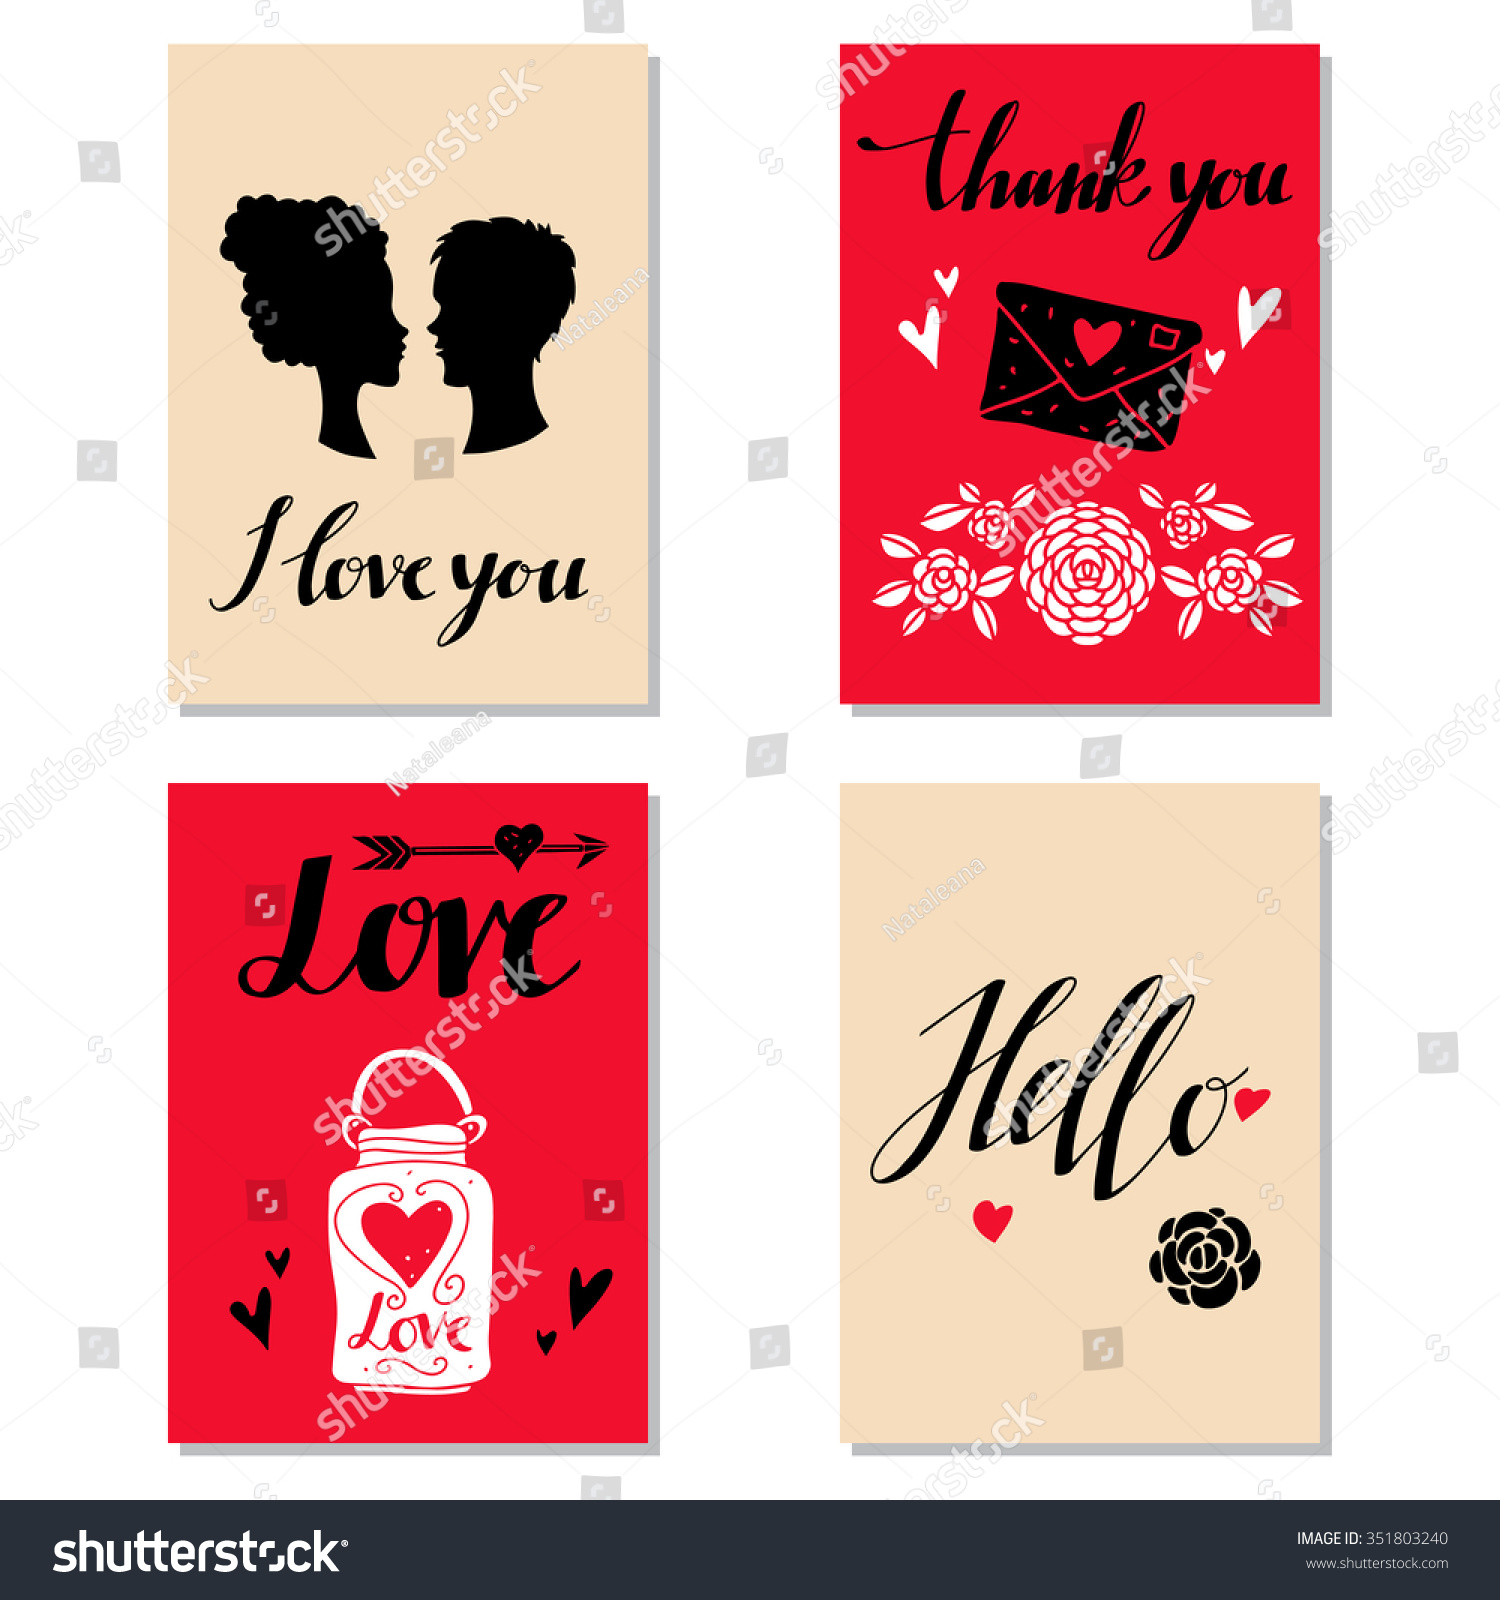 Greeting Valentines Day Cards Wedding Invitation Stock Photo (Photo ...